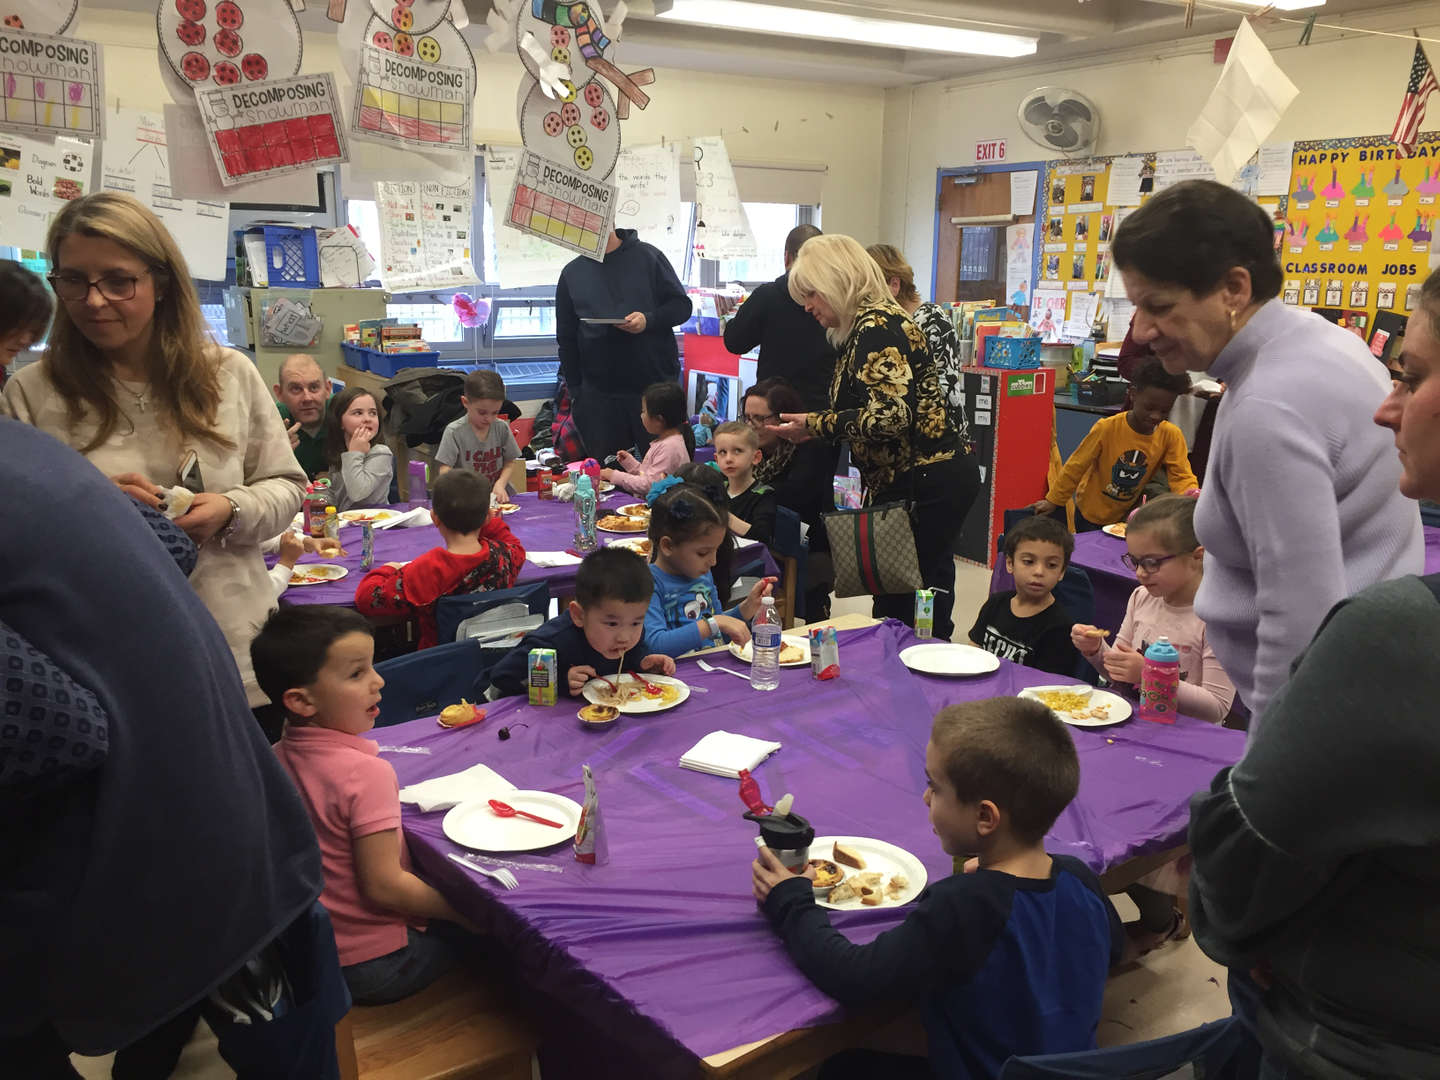 parents and children sampling the food